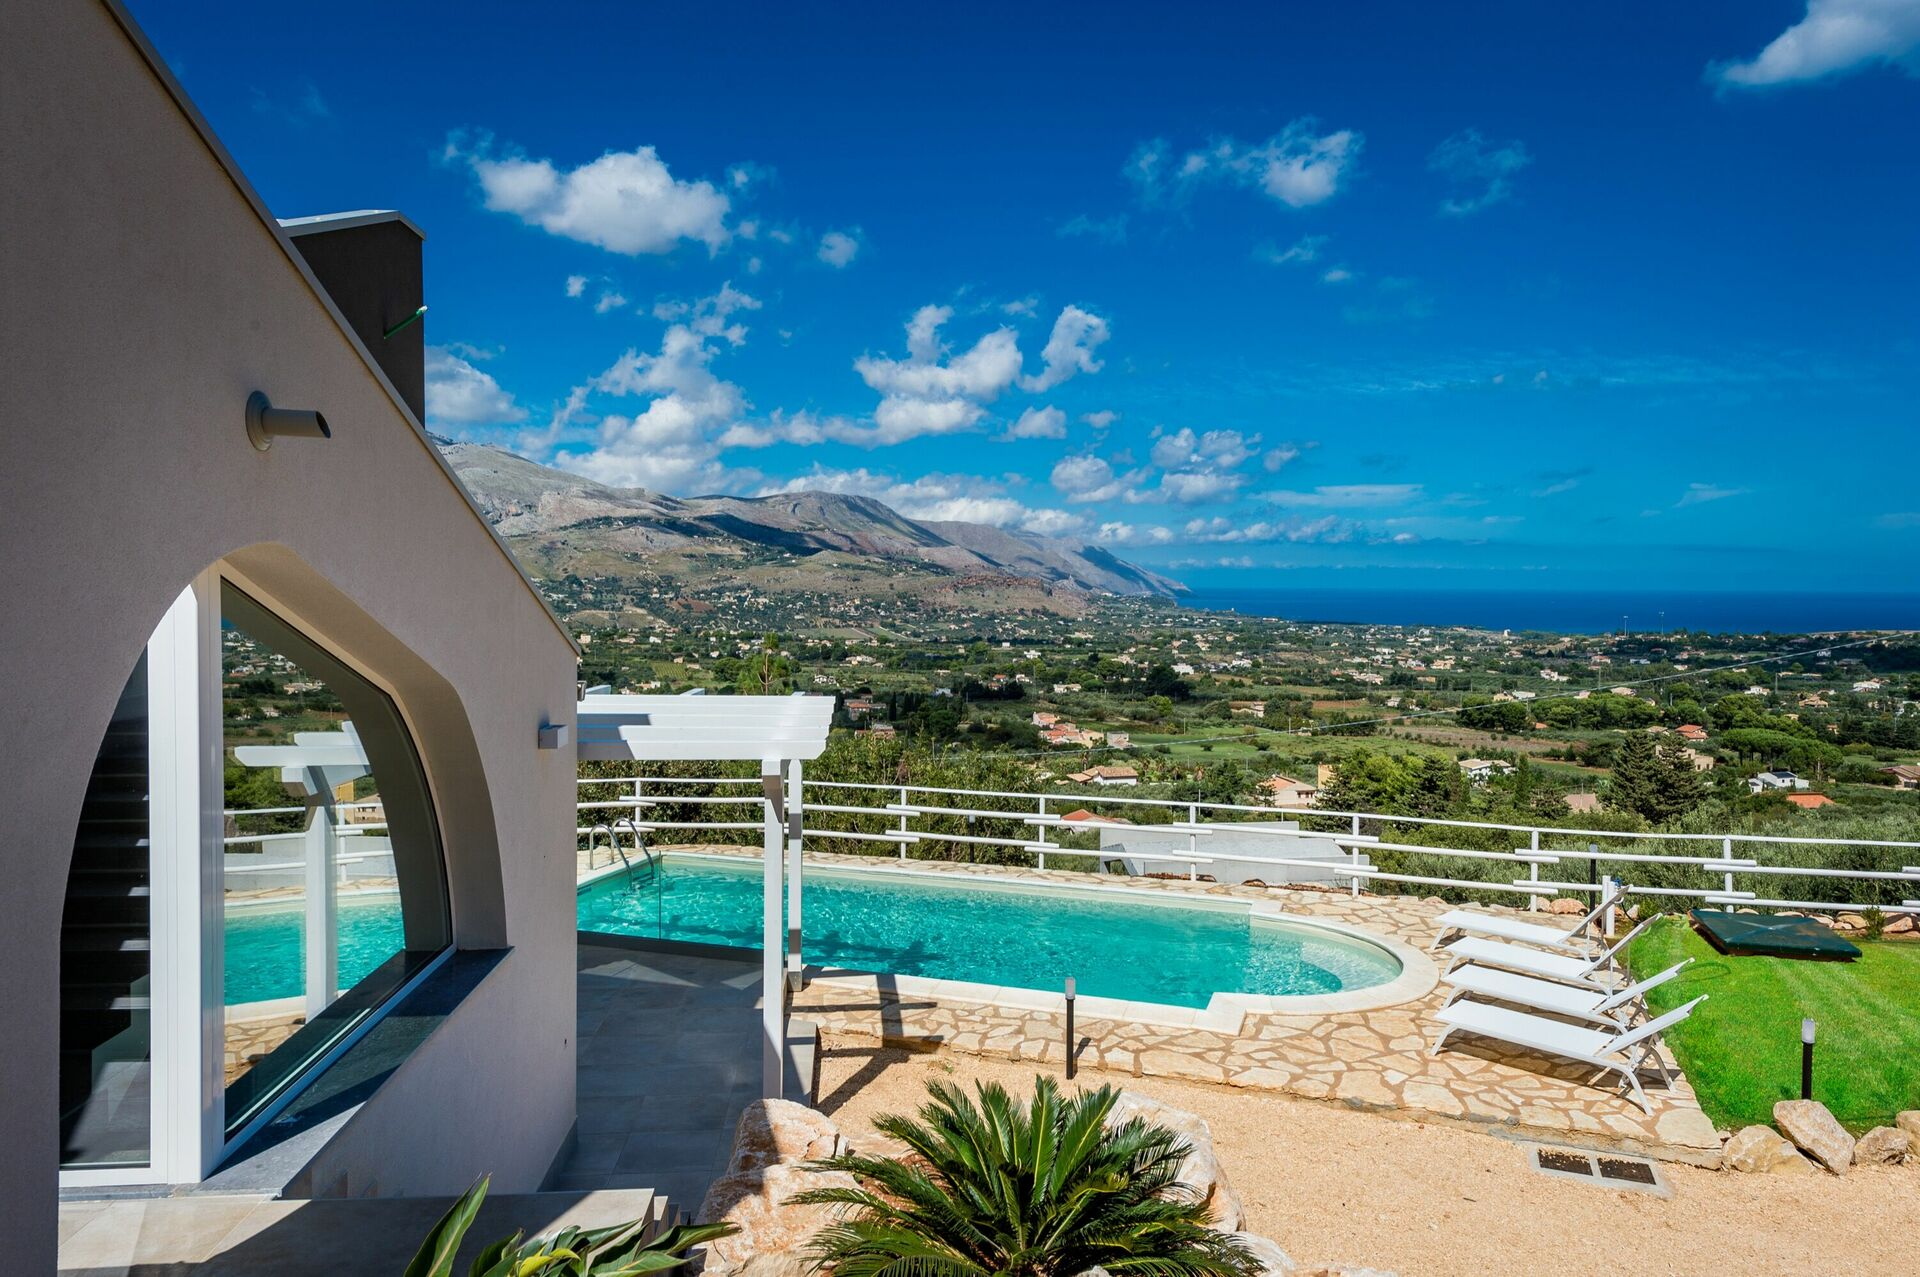 Foto Di Ville Lussuose villa scire, luxury seaside villa rental in castellammare